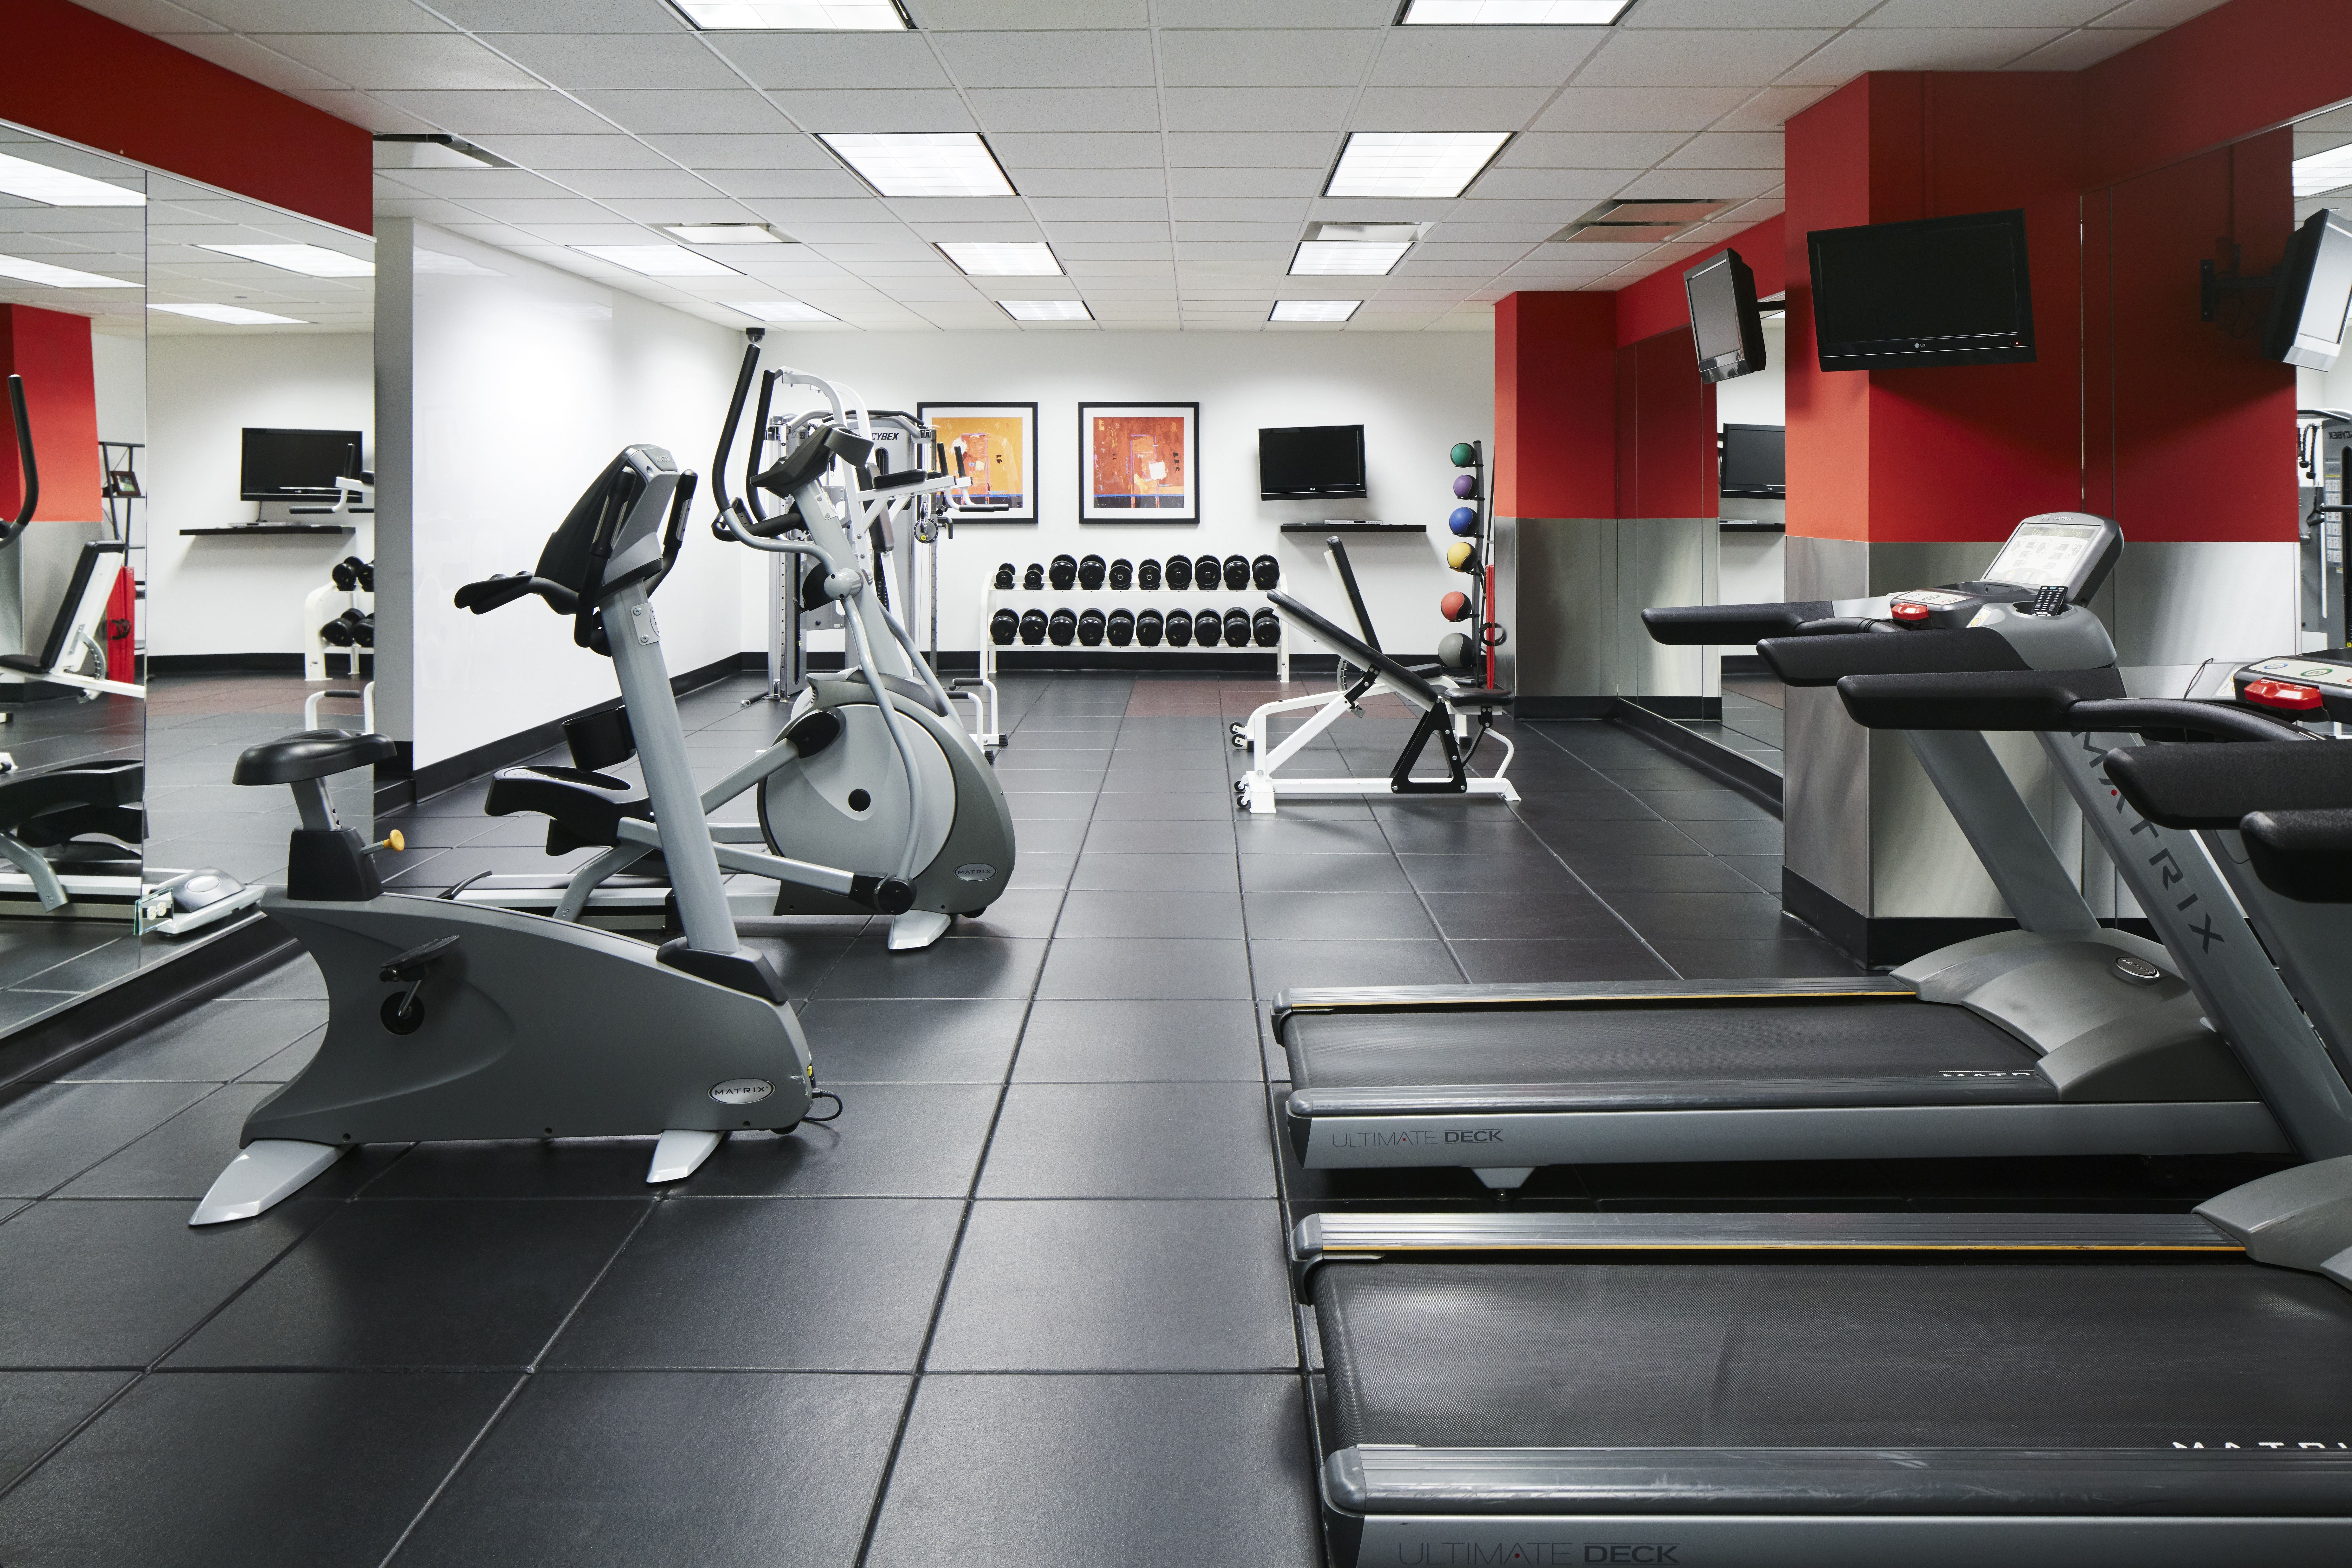 Fitness Center at Central Loop Hotel. Photo Courtesy of Lisa Piccirillo